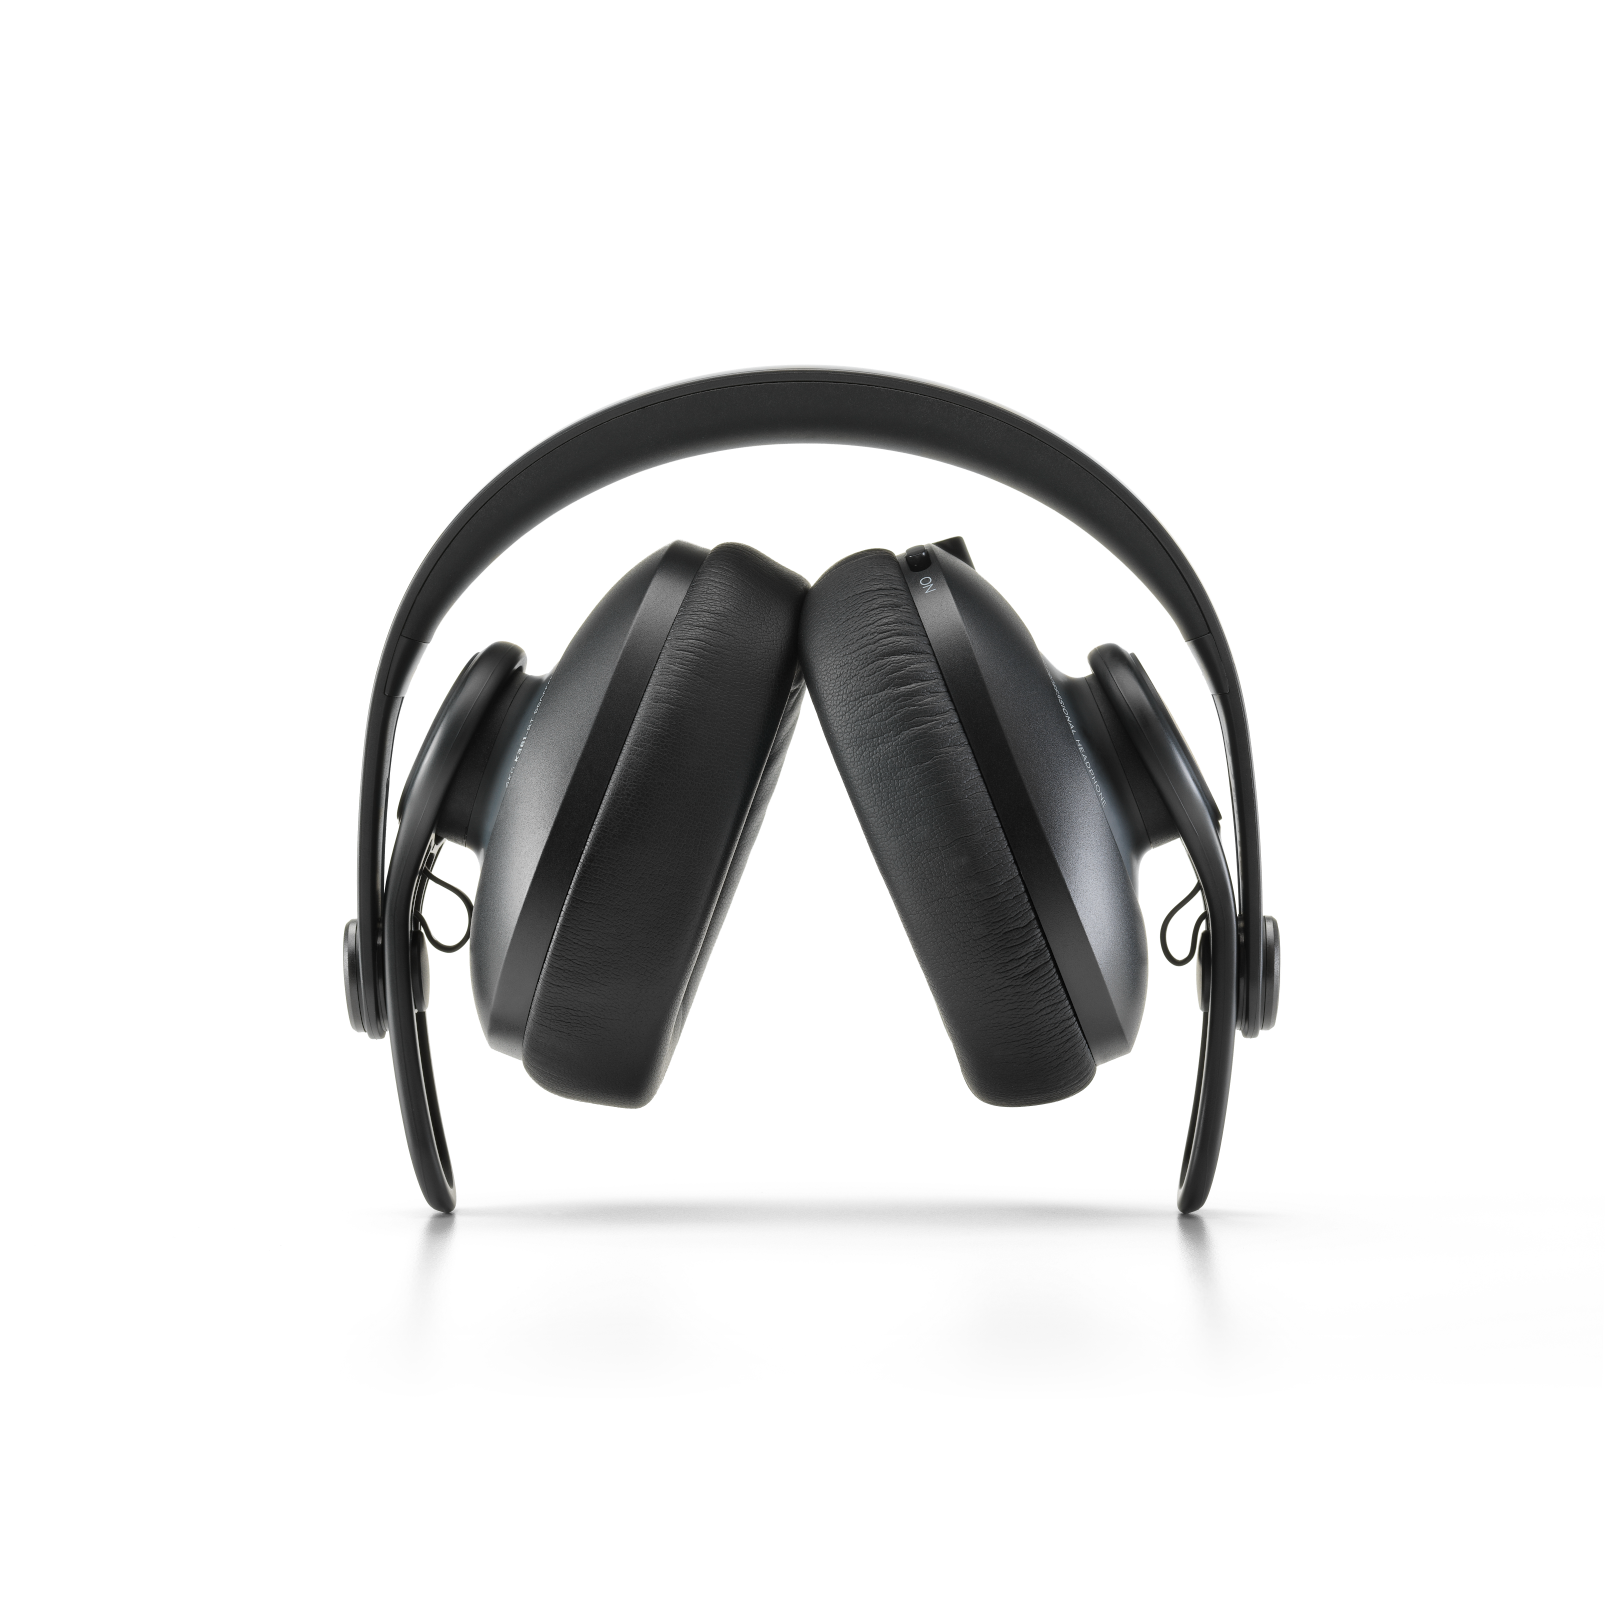 K361-BT - Black - Over-ear, closed-back, foldable studio headphones with Bluetooth - Detailshot 1